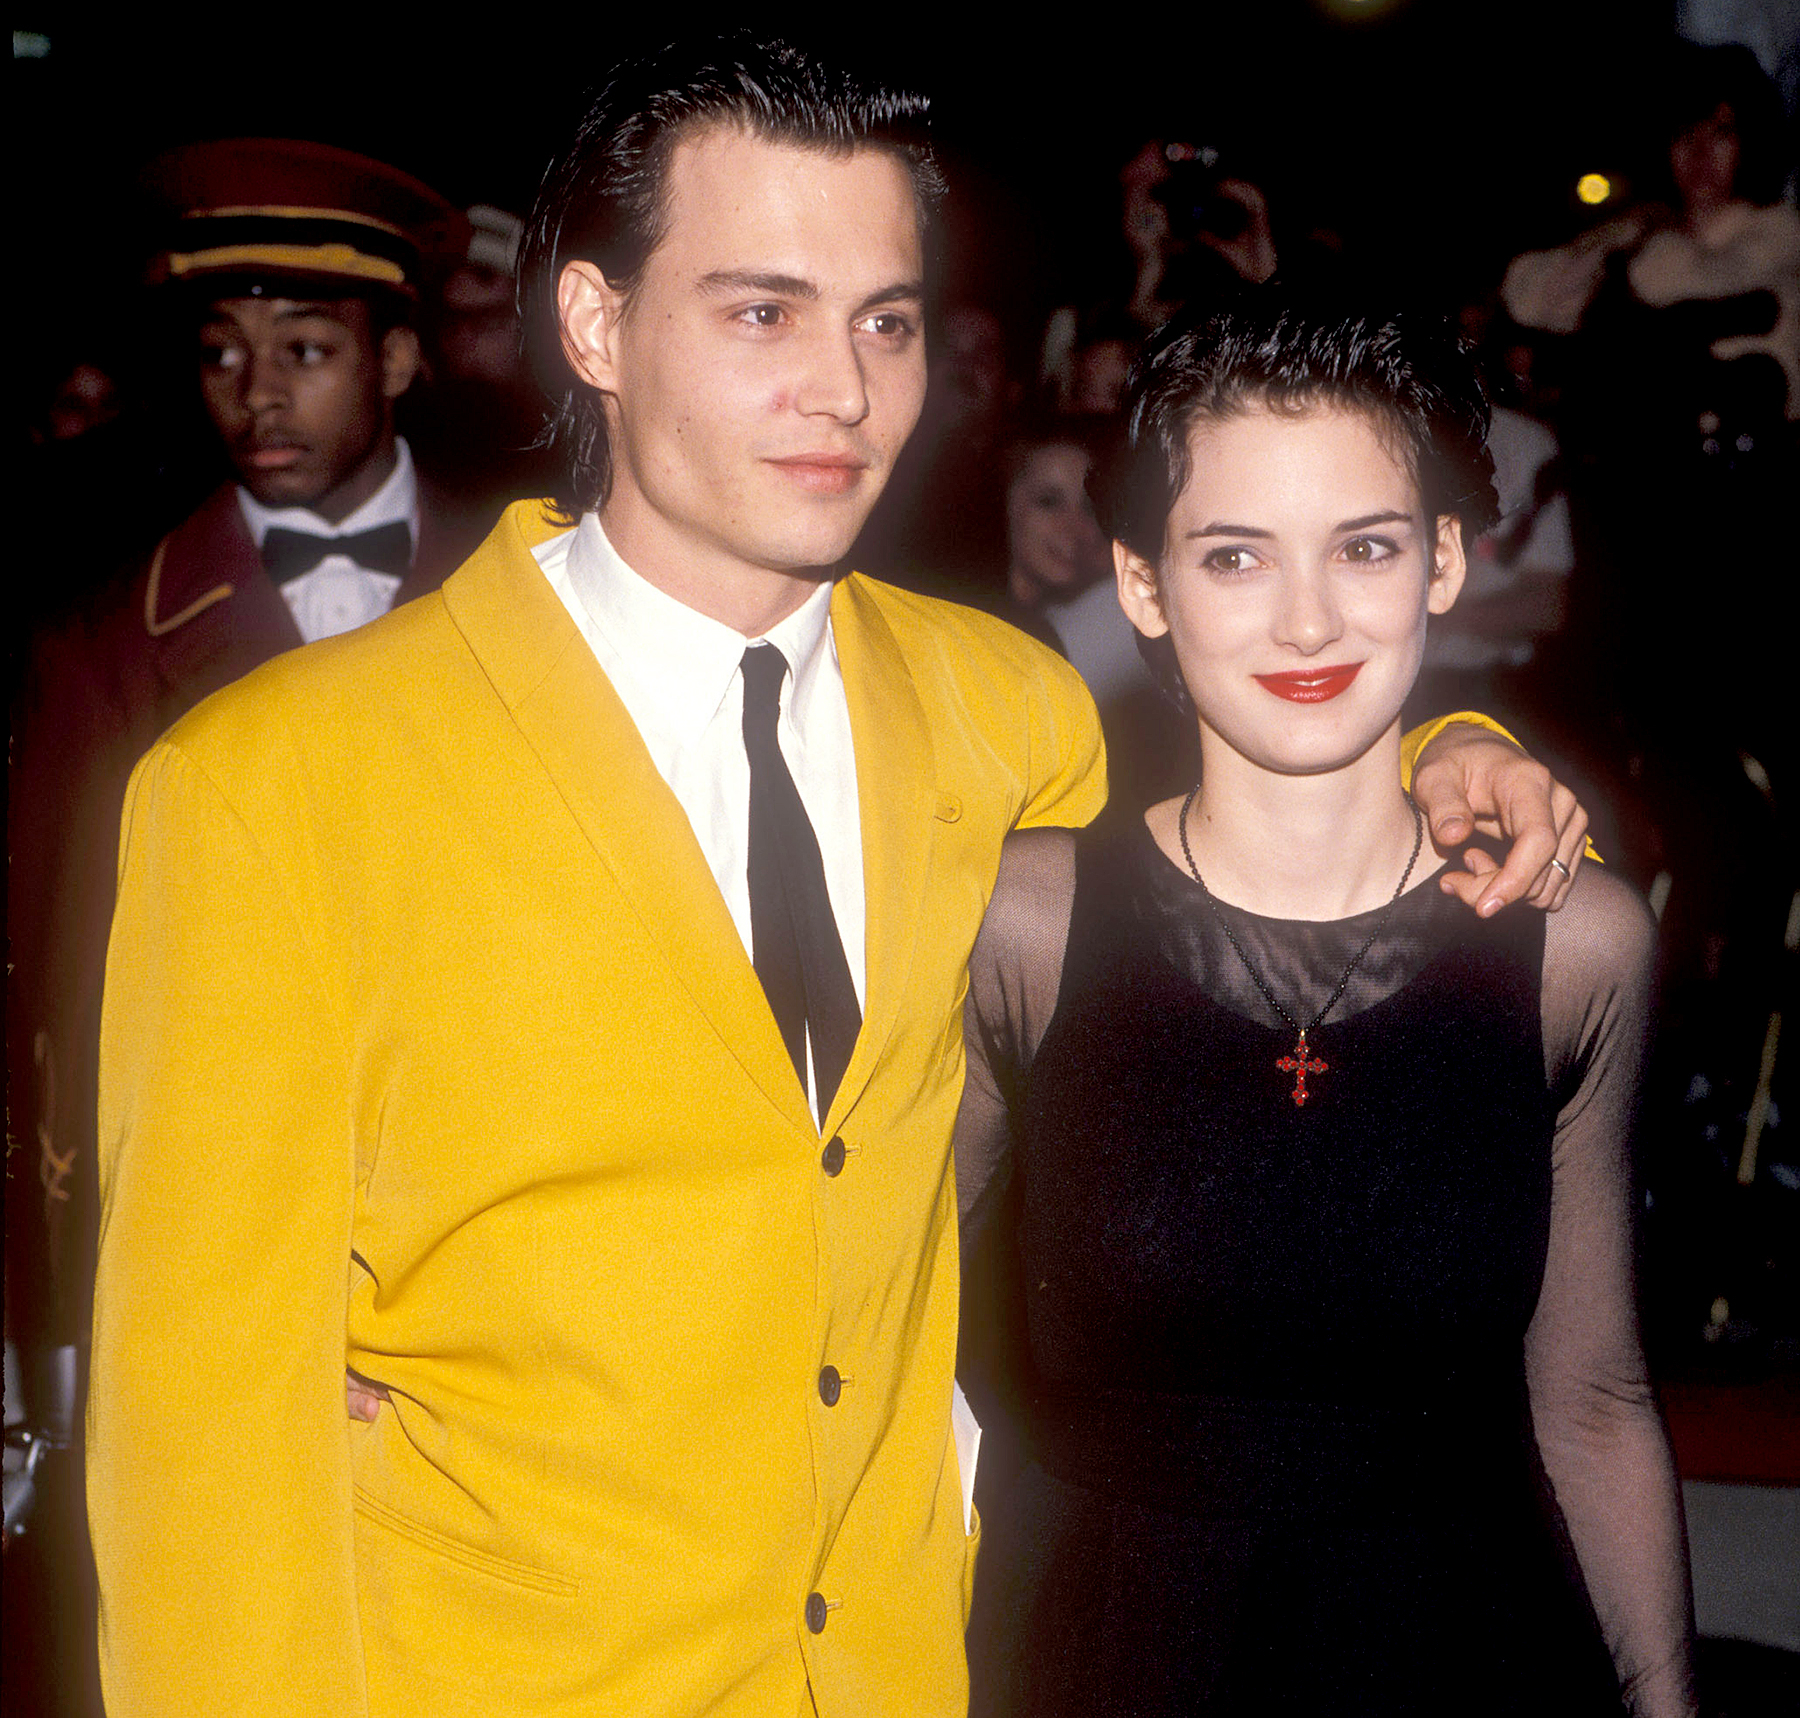 Johnny Depp and Winona Ryder in 1990.